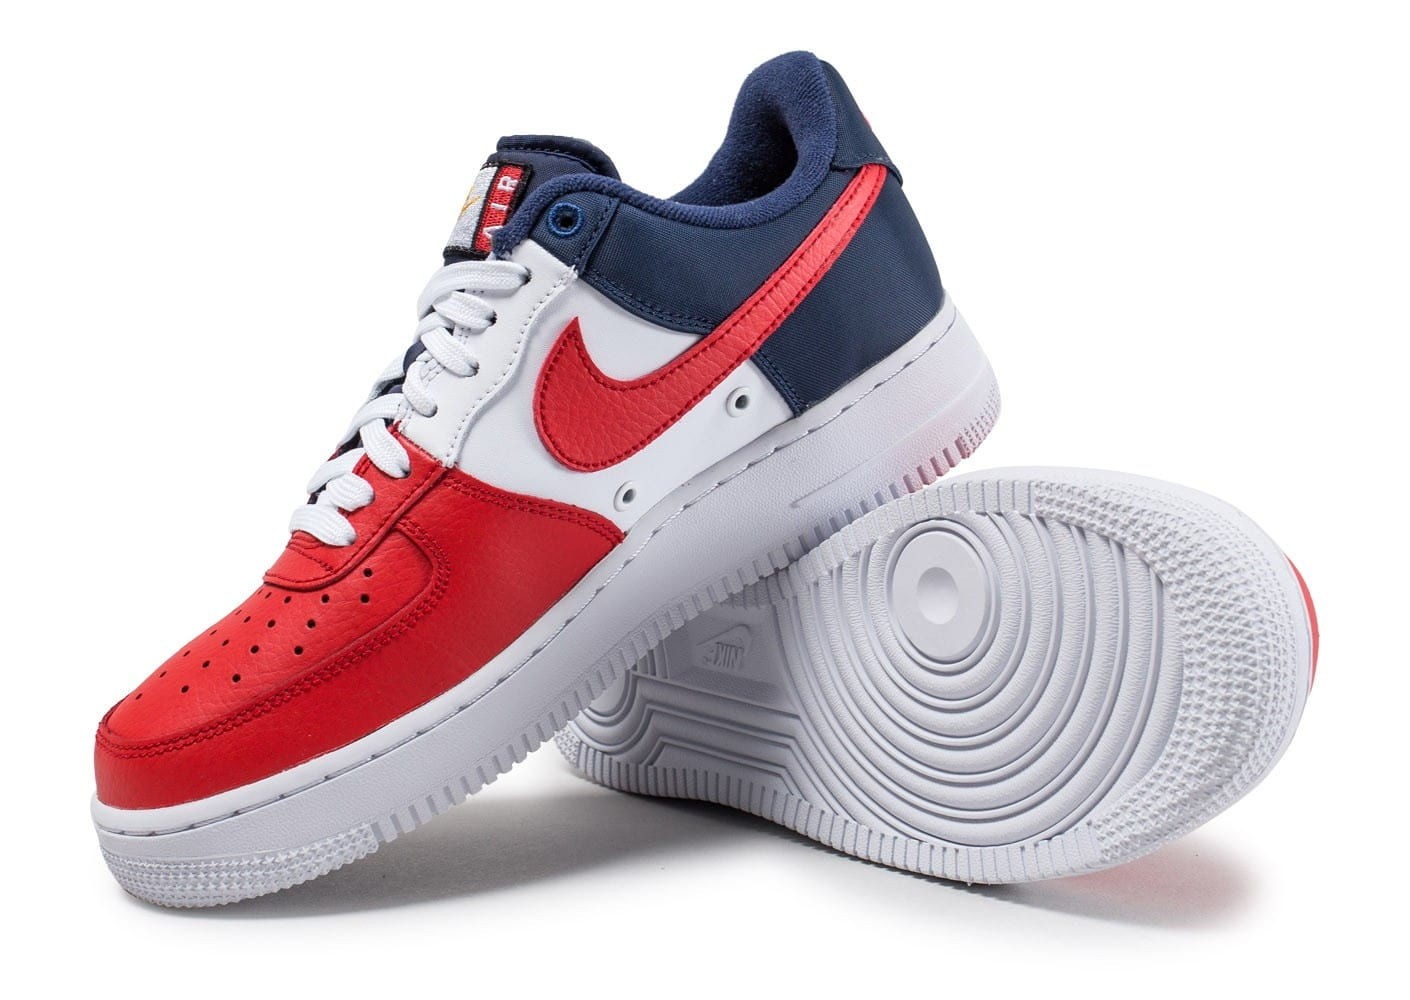 Blanche Rouge Air Nike Et Kxn0op8w Force Qtsdhr One w0OX8Pkn